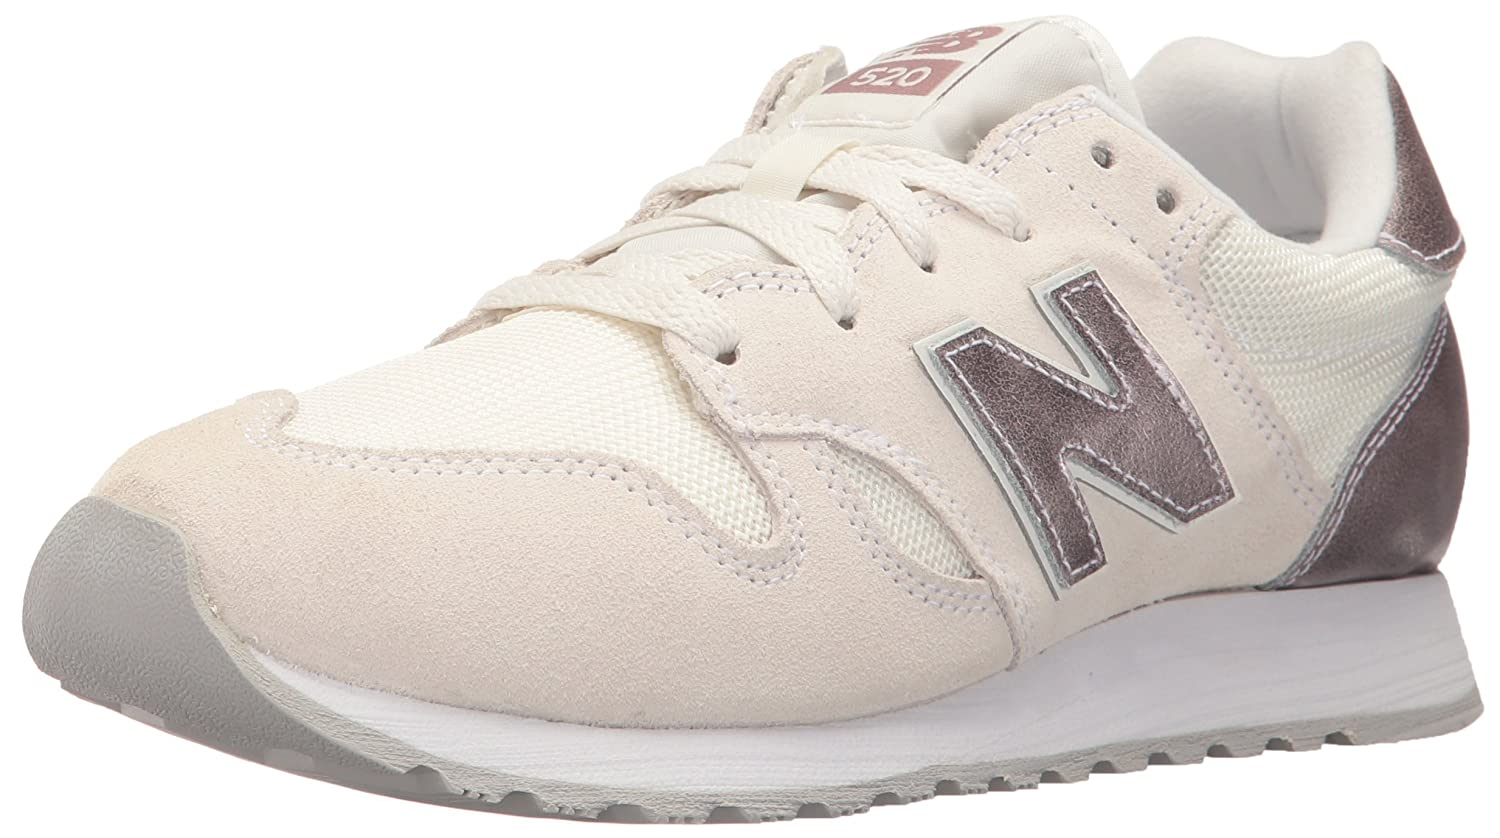 New Balance Women's 520v1 Sneaker B01MSOSSY0 13 B(M) US|Sea Salt/Champagne Metallic